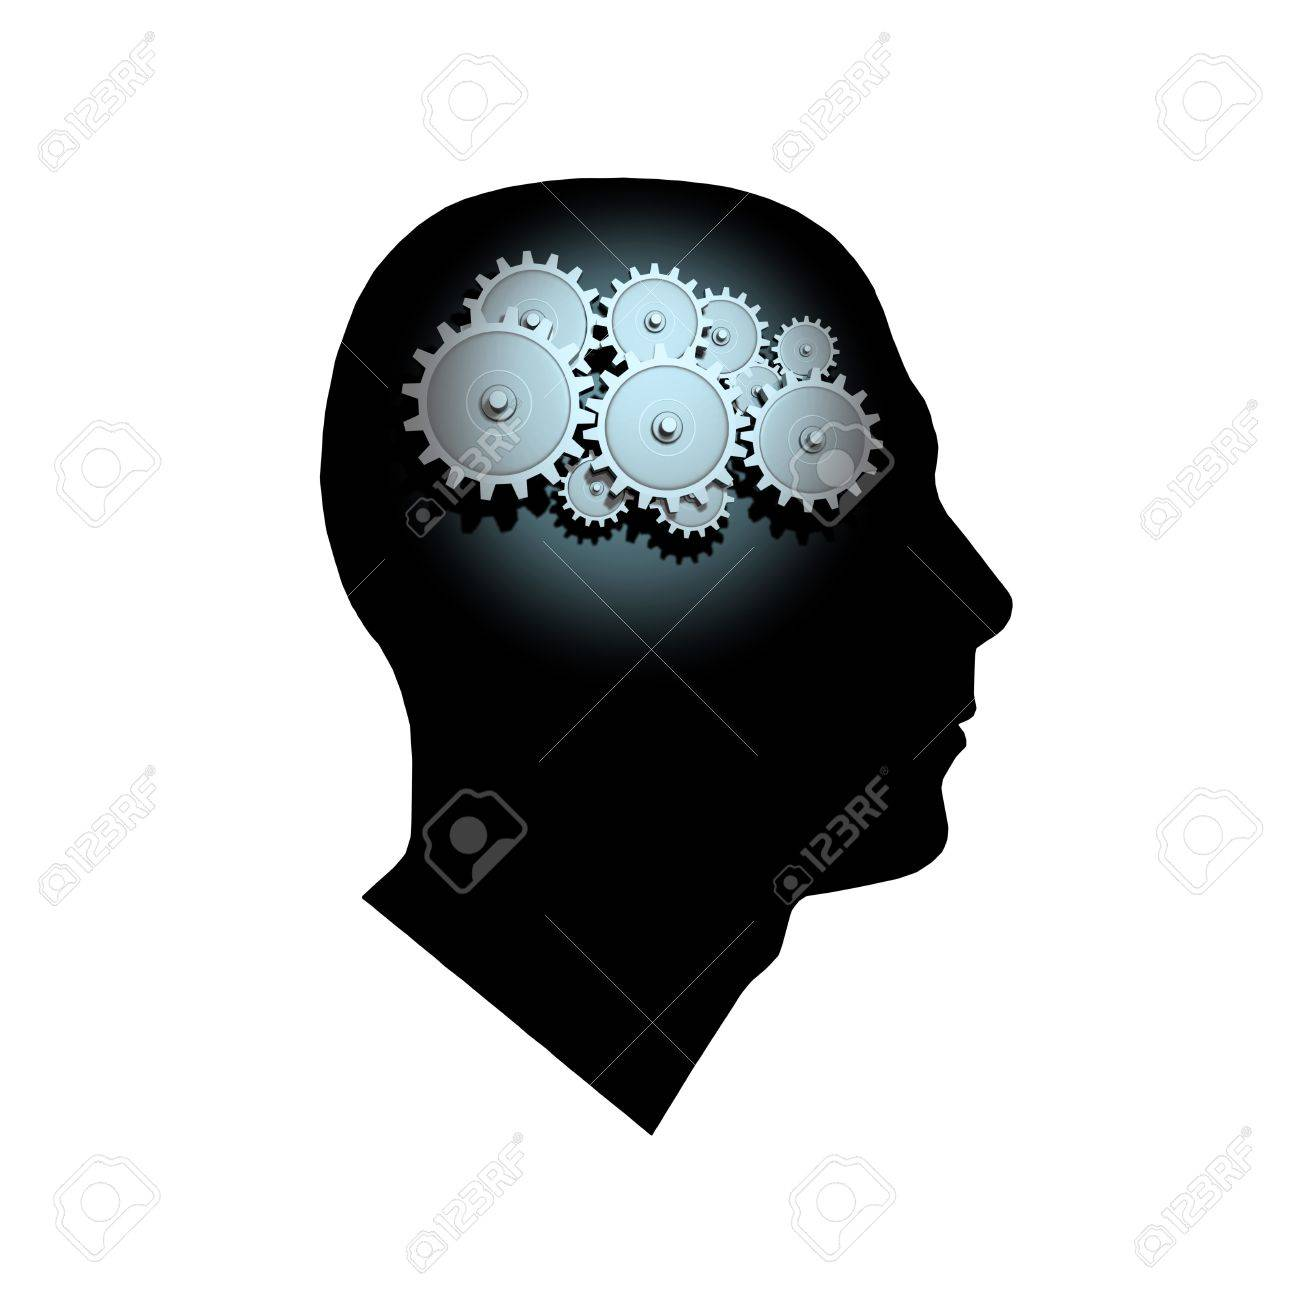 3D Gears inside the profile of a man's head. Stock Photo - 8519860